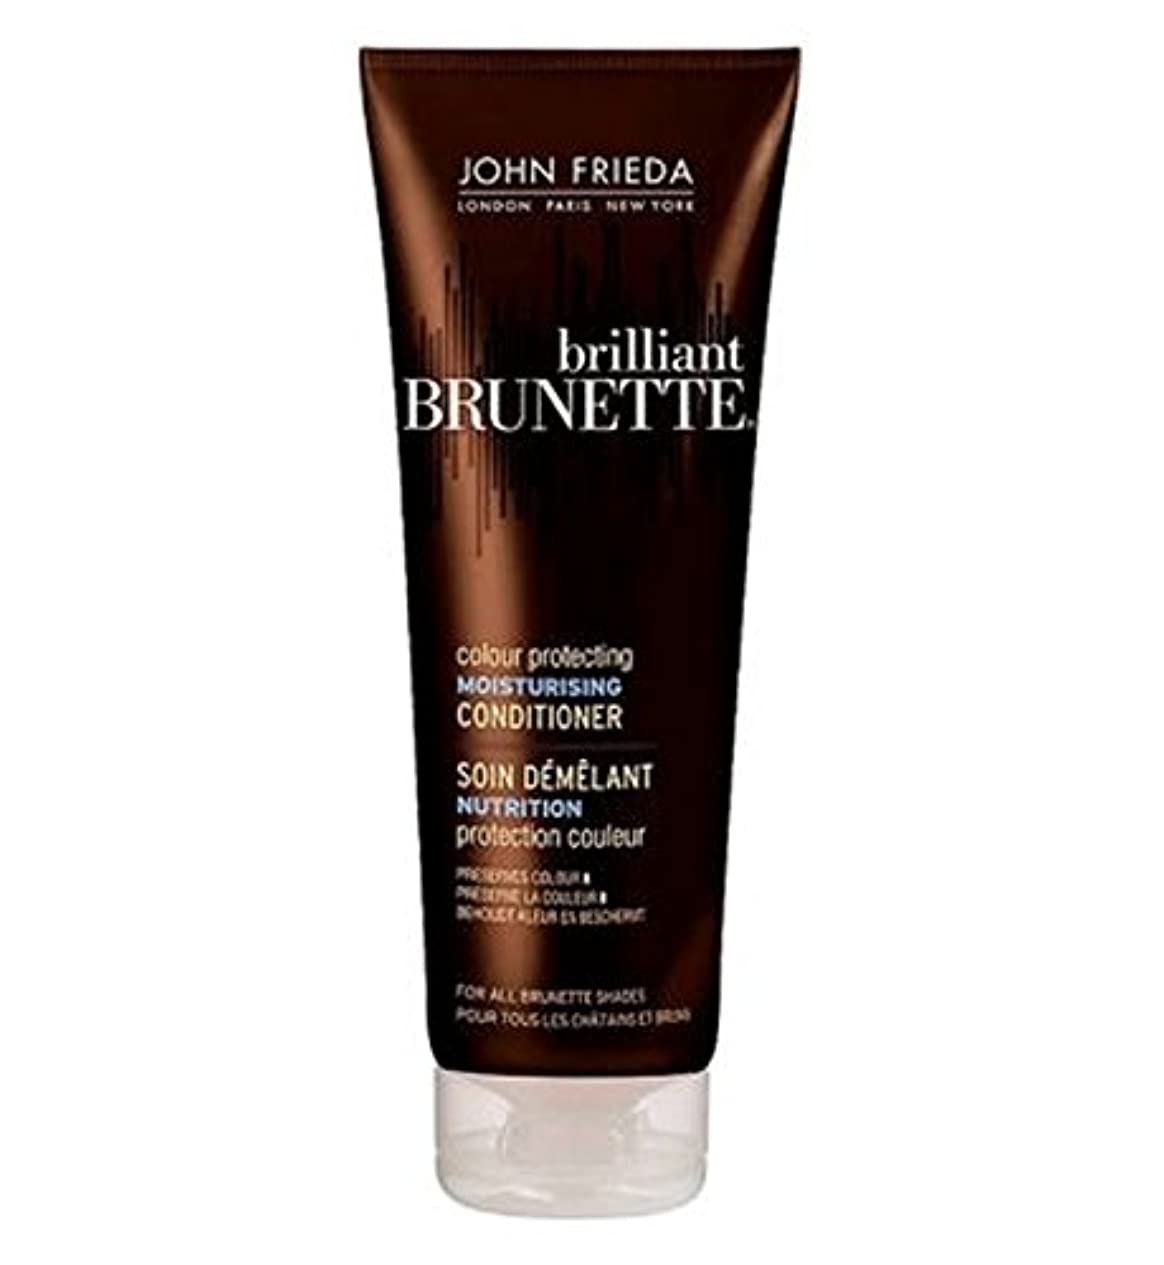 シンボル好奇心盛ベンチャーJohn Frieda Brilliant Brunette Colour Protecting Moisturising Conditioner for Brunettes 250ml - 250ミリリットルブルネット...